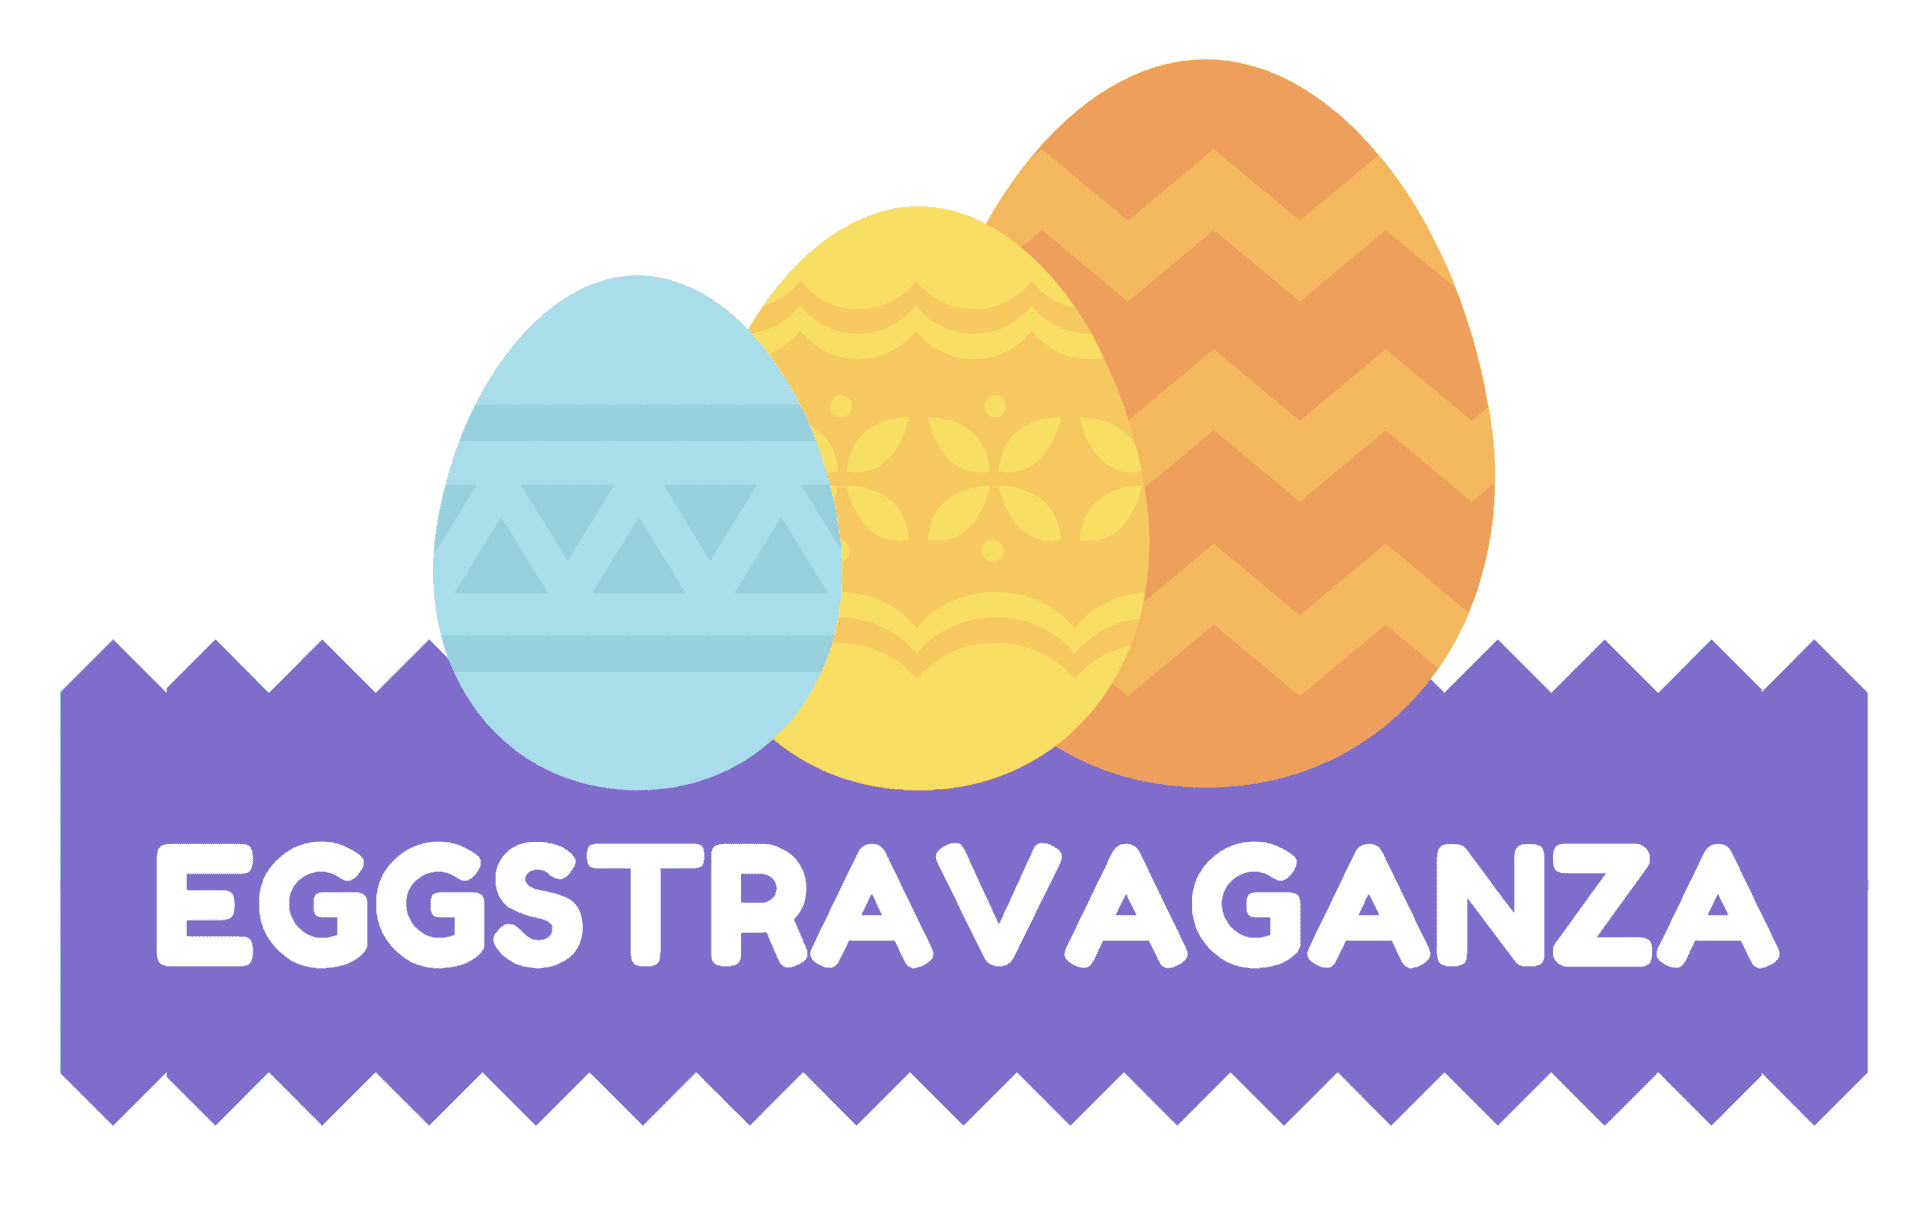 Easter Eggstravaganza event for Loaves and Fishes for St. Louis